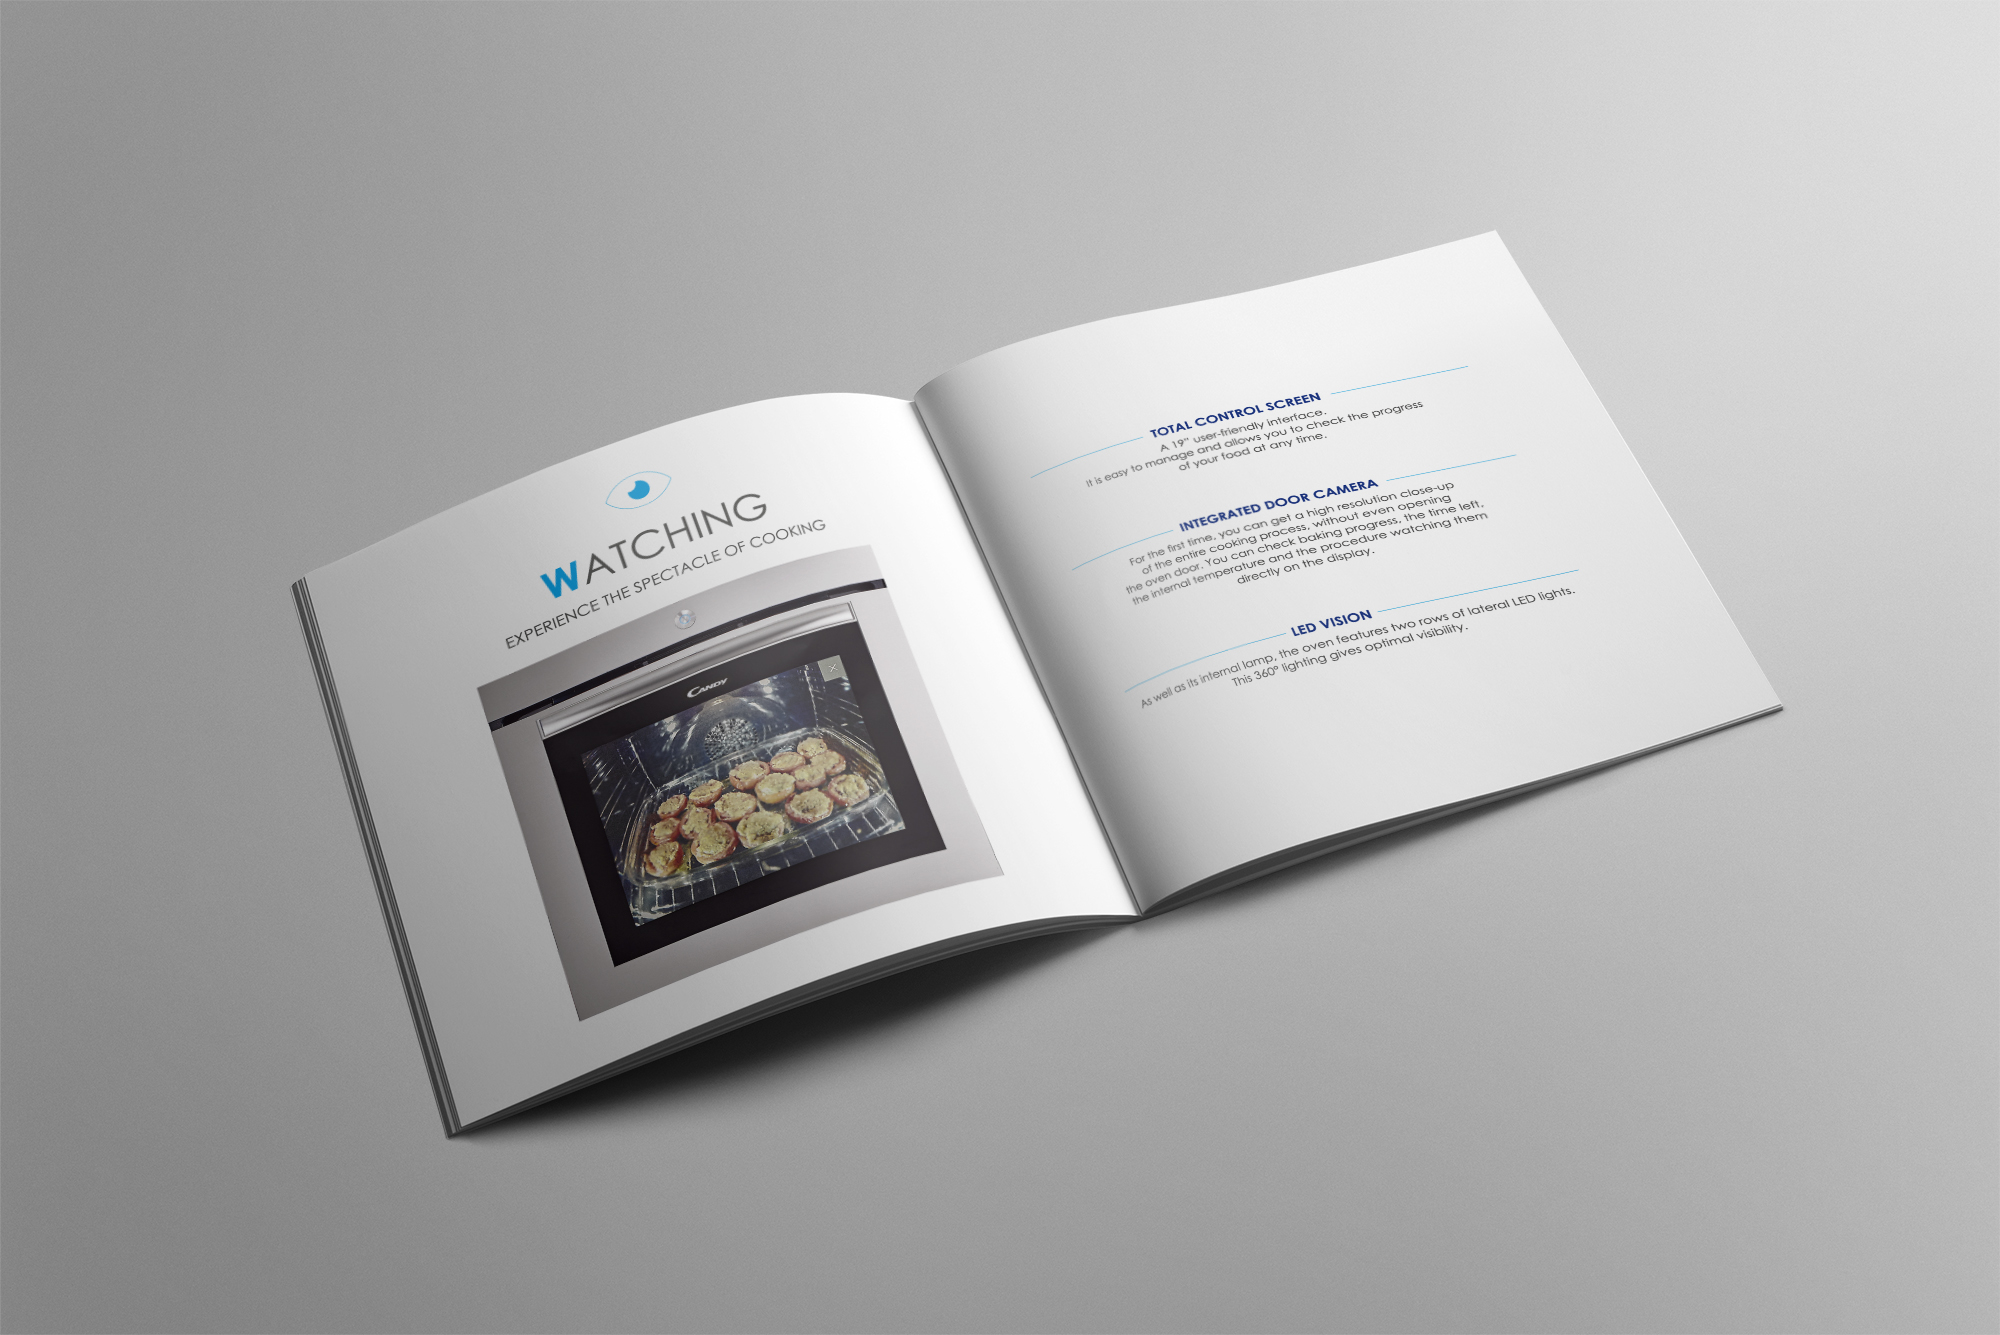 Brochure-Design-Advertising-Graphic-branding-online-marketing-illustration-poster-05